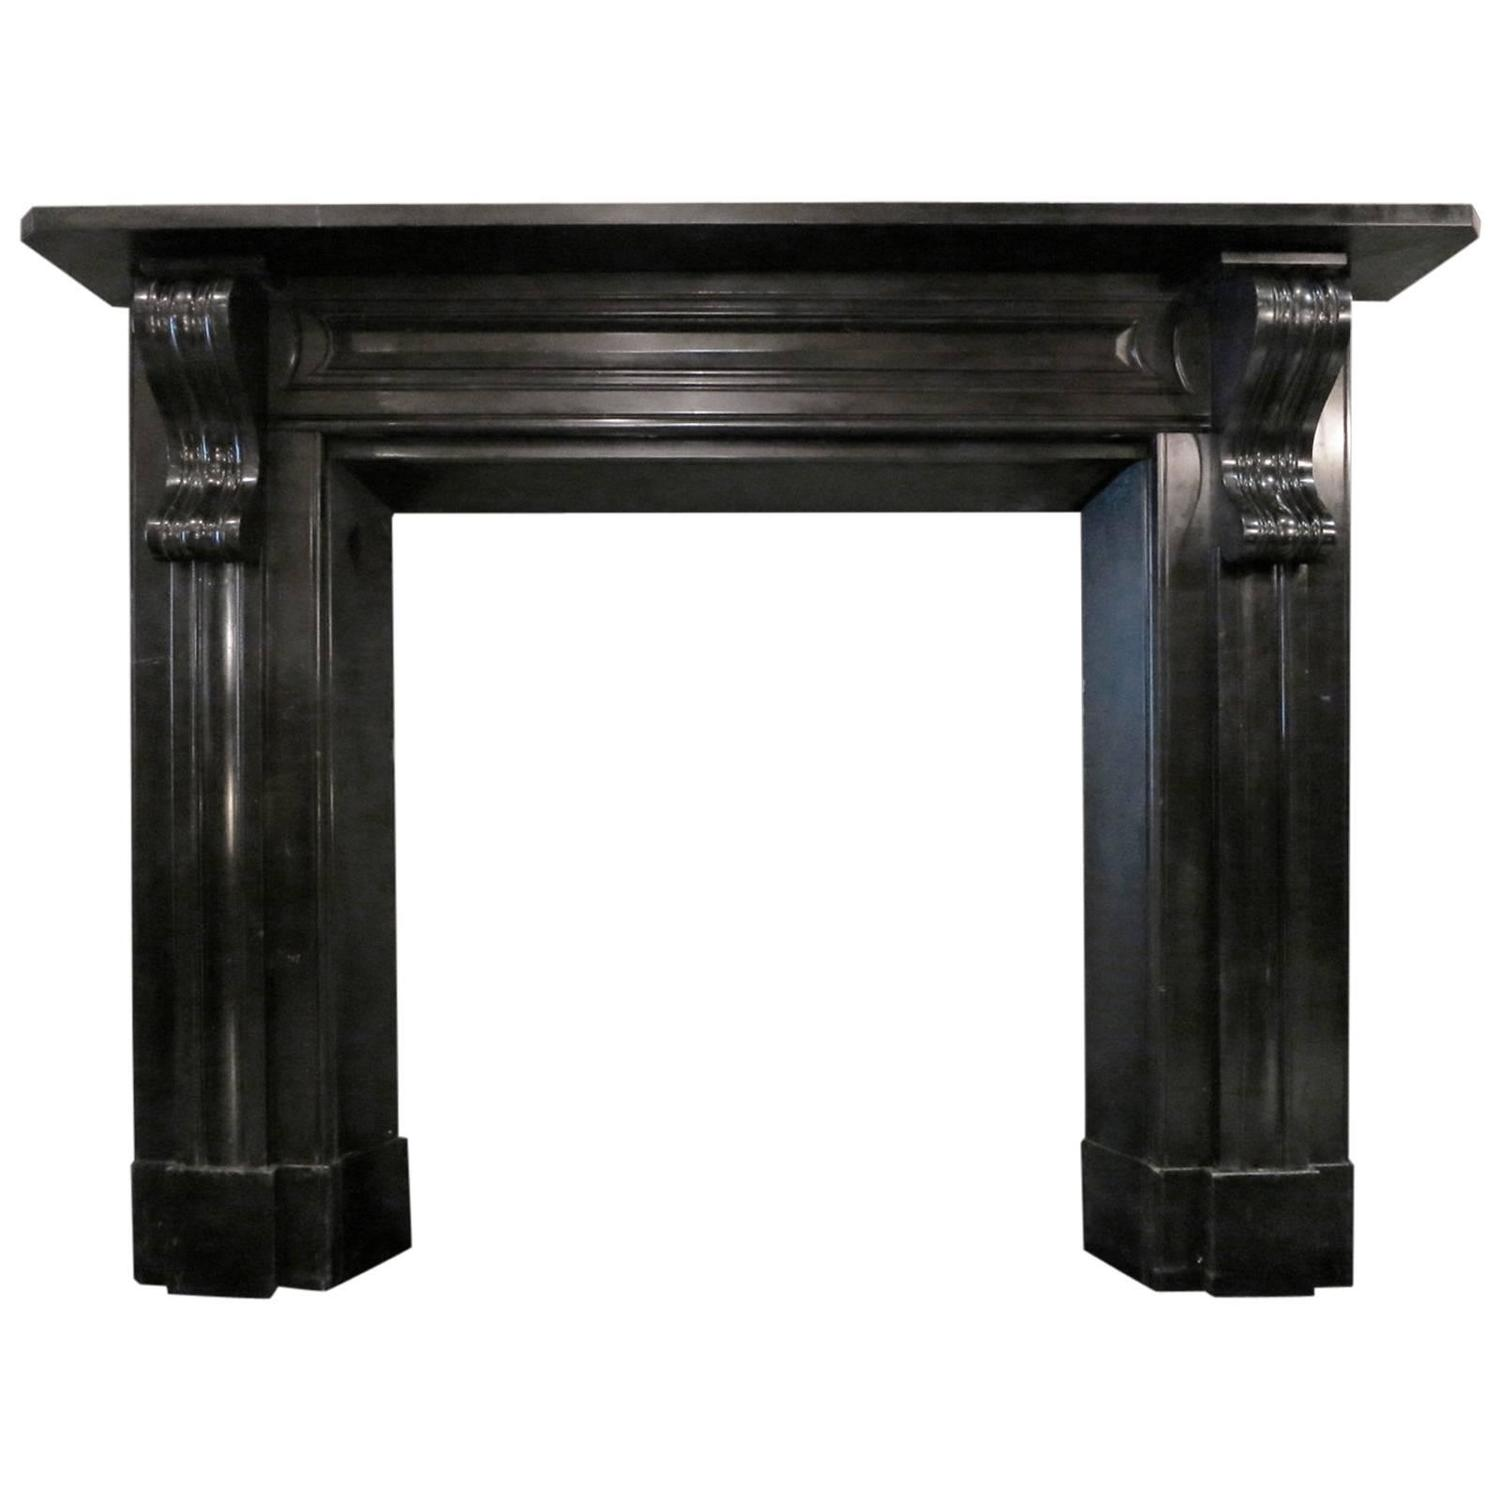 antique early 19th century irish black marble fireplace